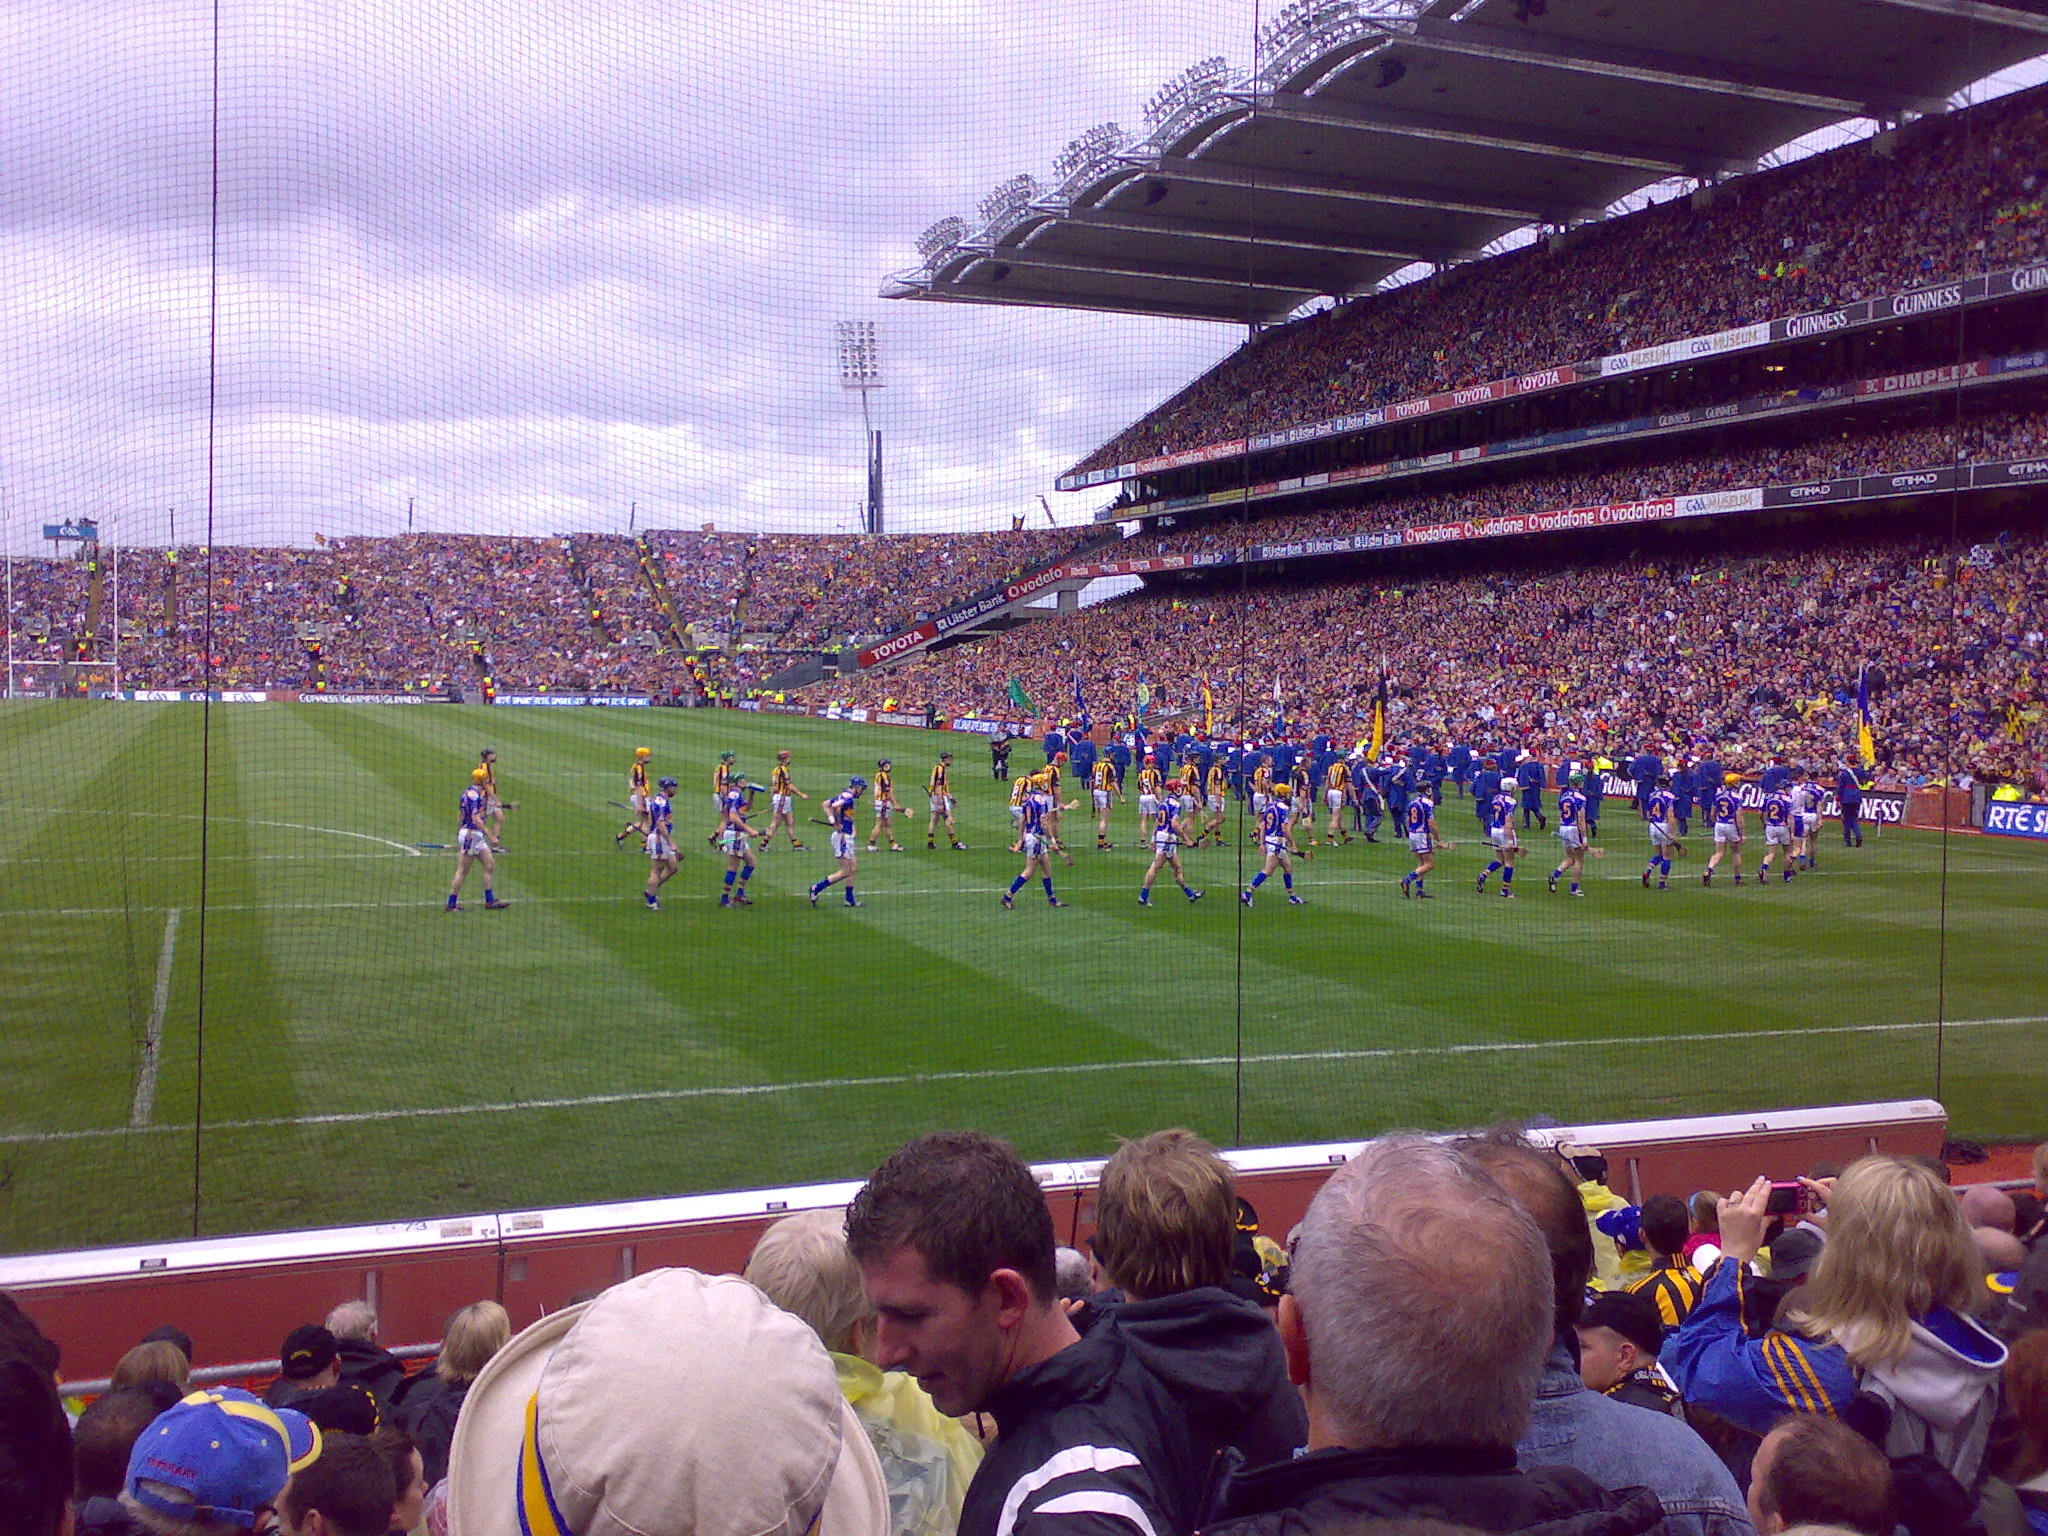 4b89db7d4bb95 Hurling - Wikipedia